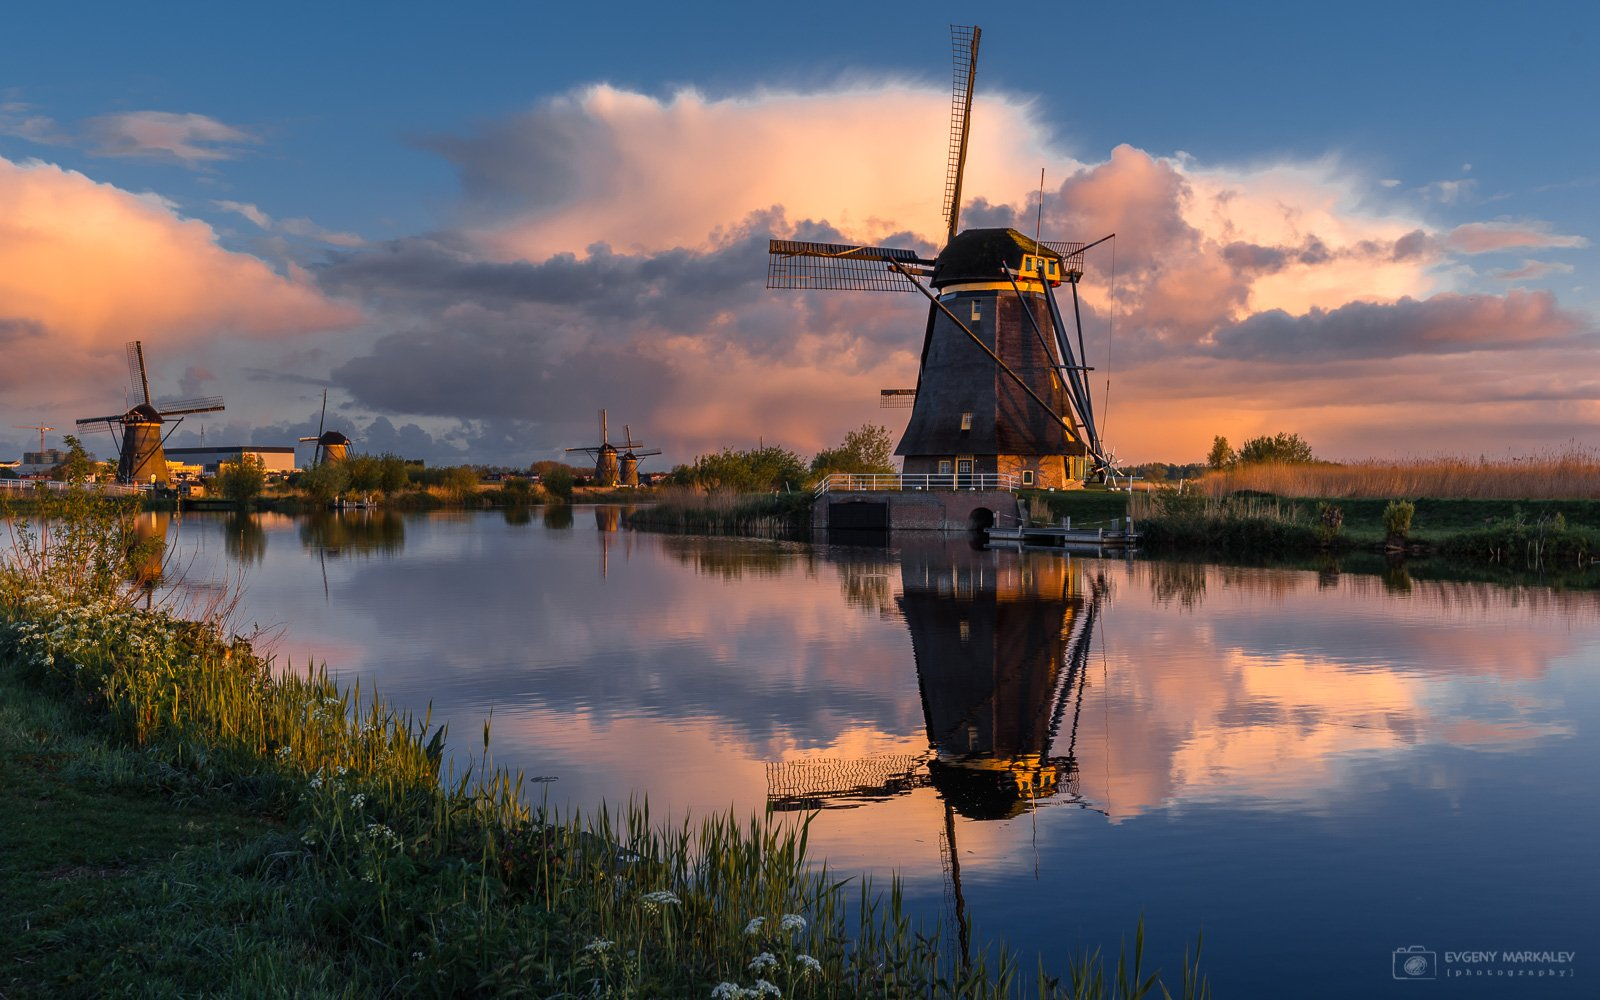 holland, kinderdijk, landscape, sunrise, рассвет, нидерланды, Евгений Маркалев